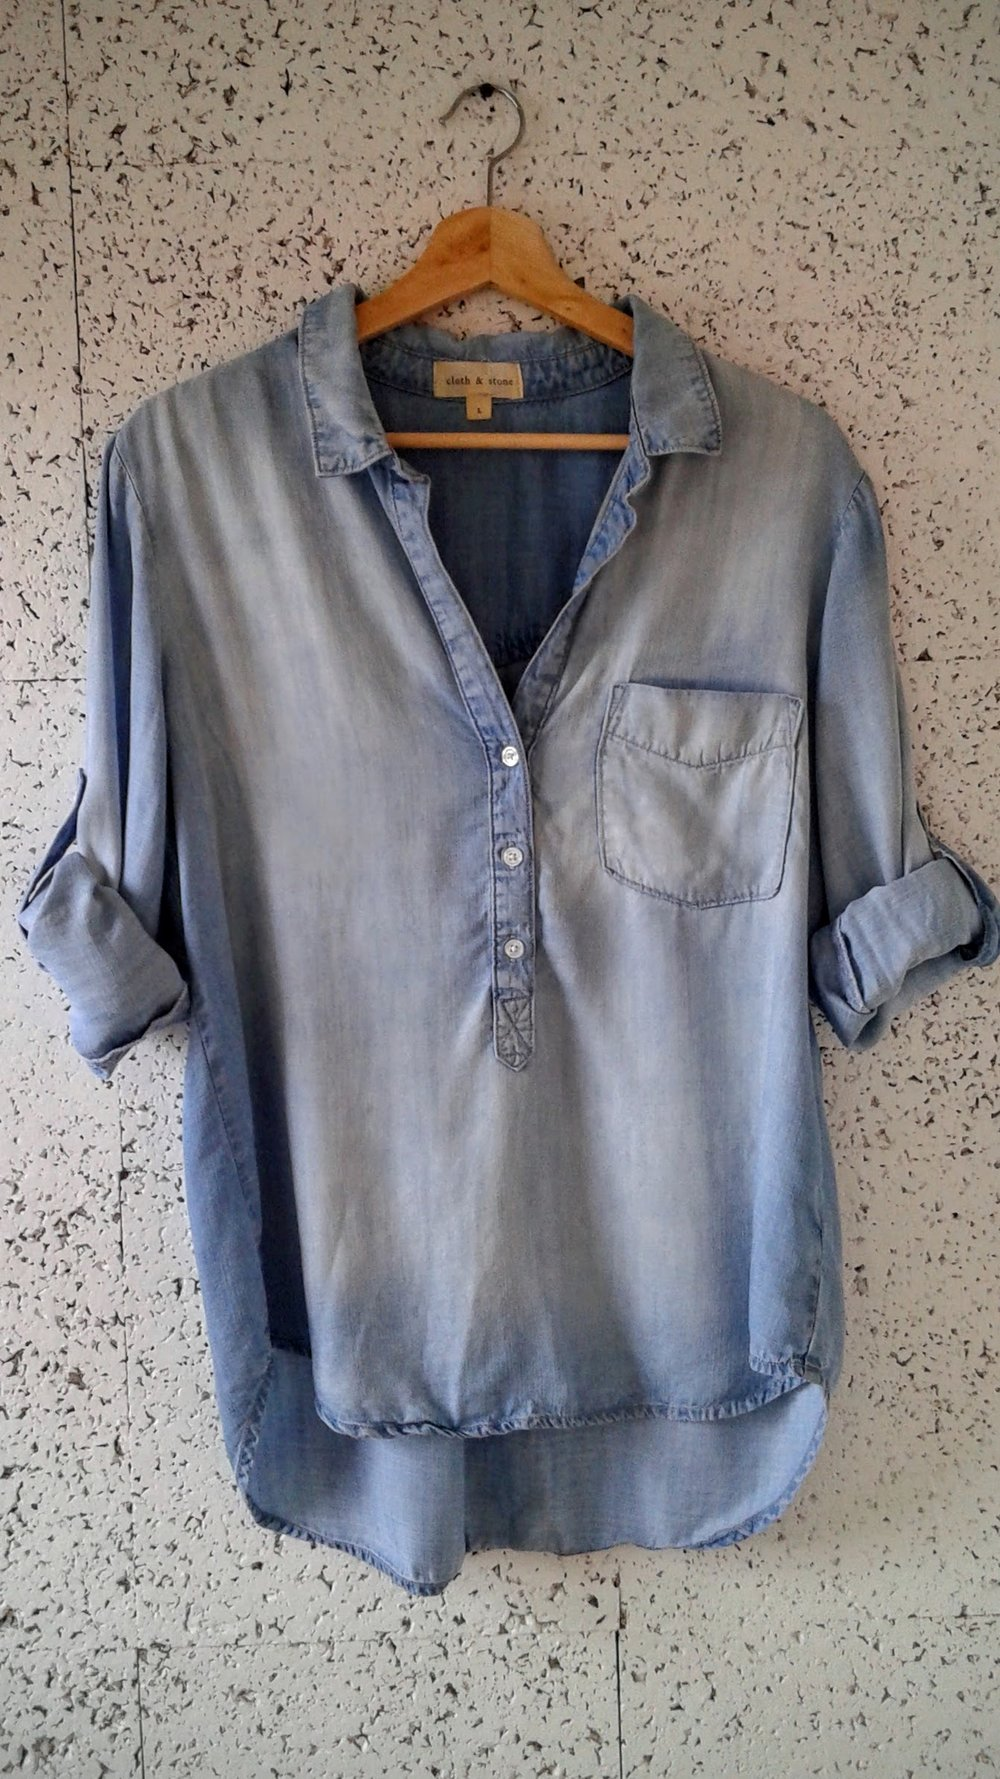 Cloth+Stone top; Size L, $28